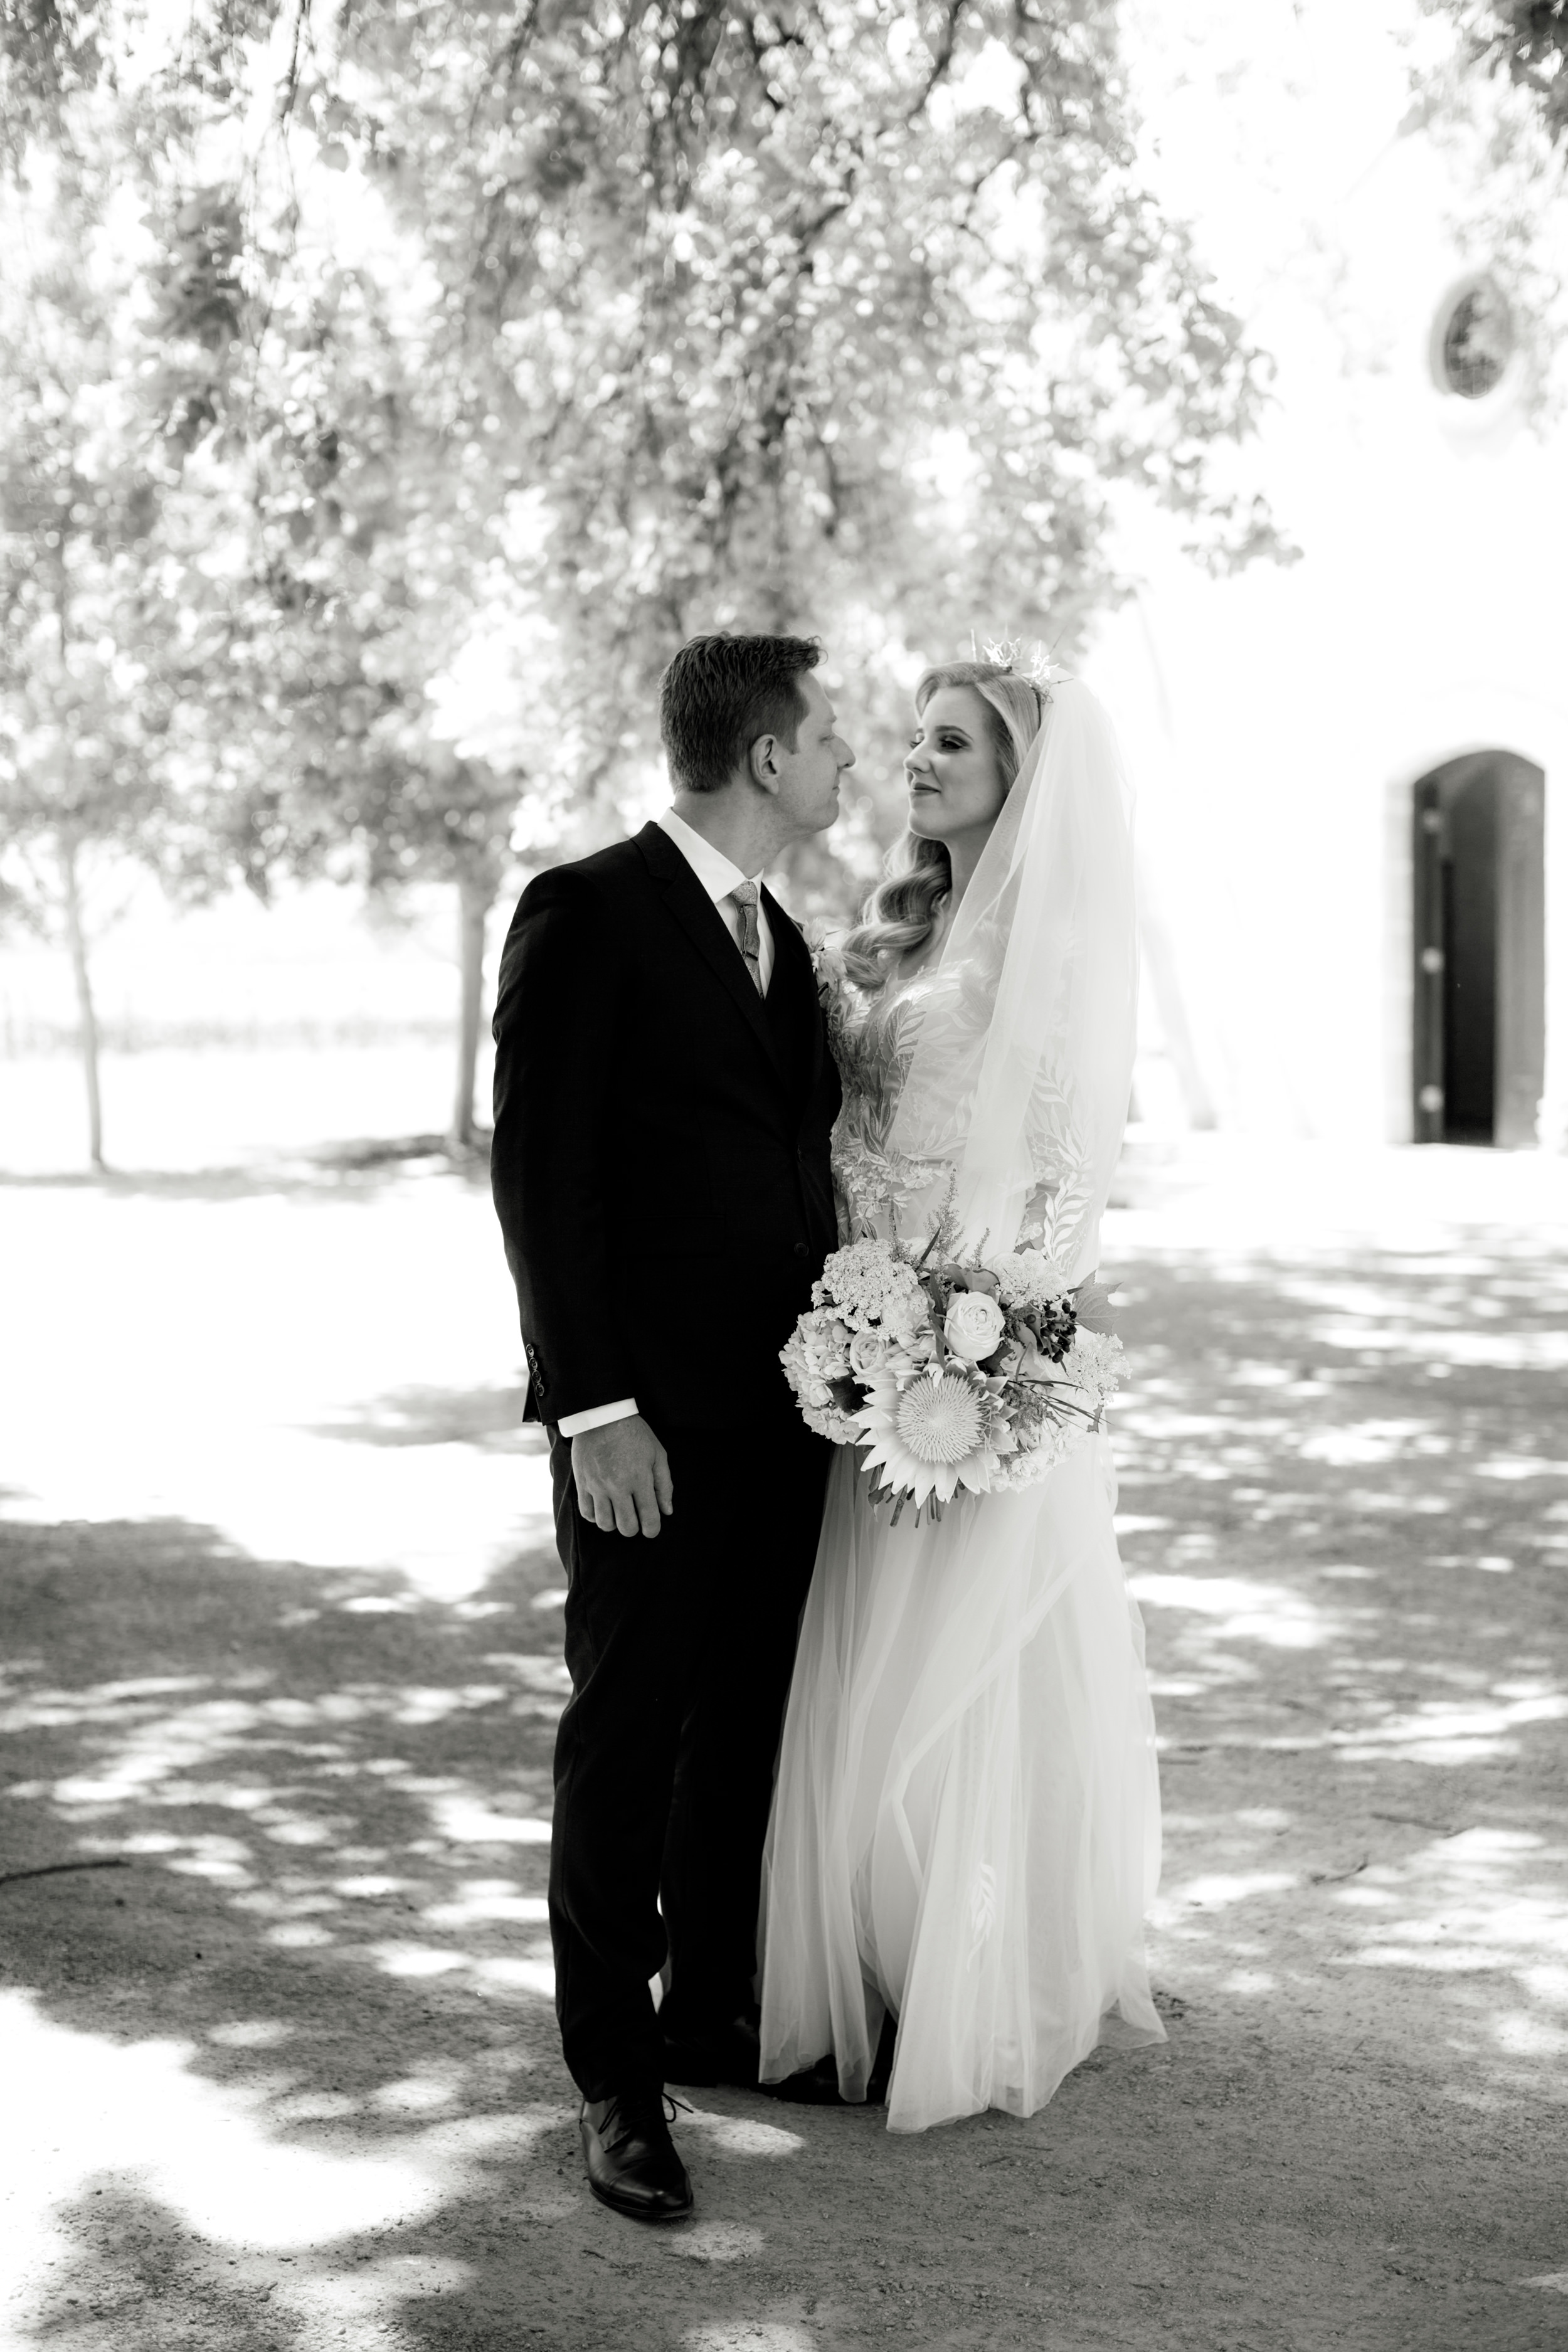 I-Got-You-Babe-&.Co.-Stones-of-the-Yarra-Valley-Wedding-Beverly-Ross0105.JPG